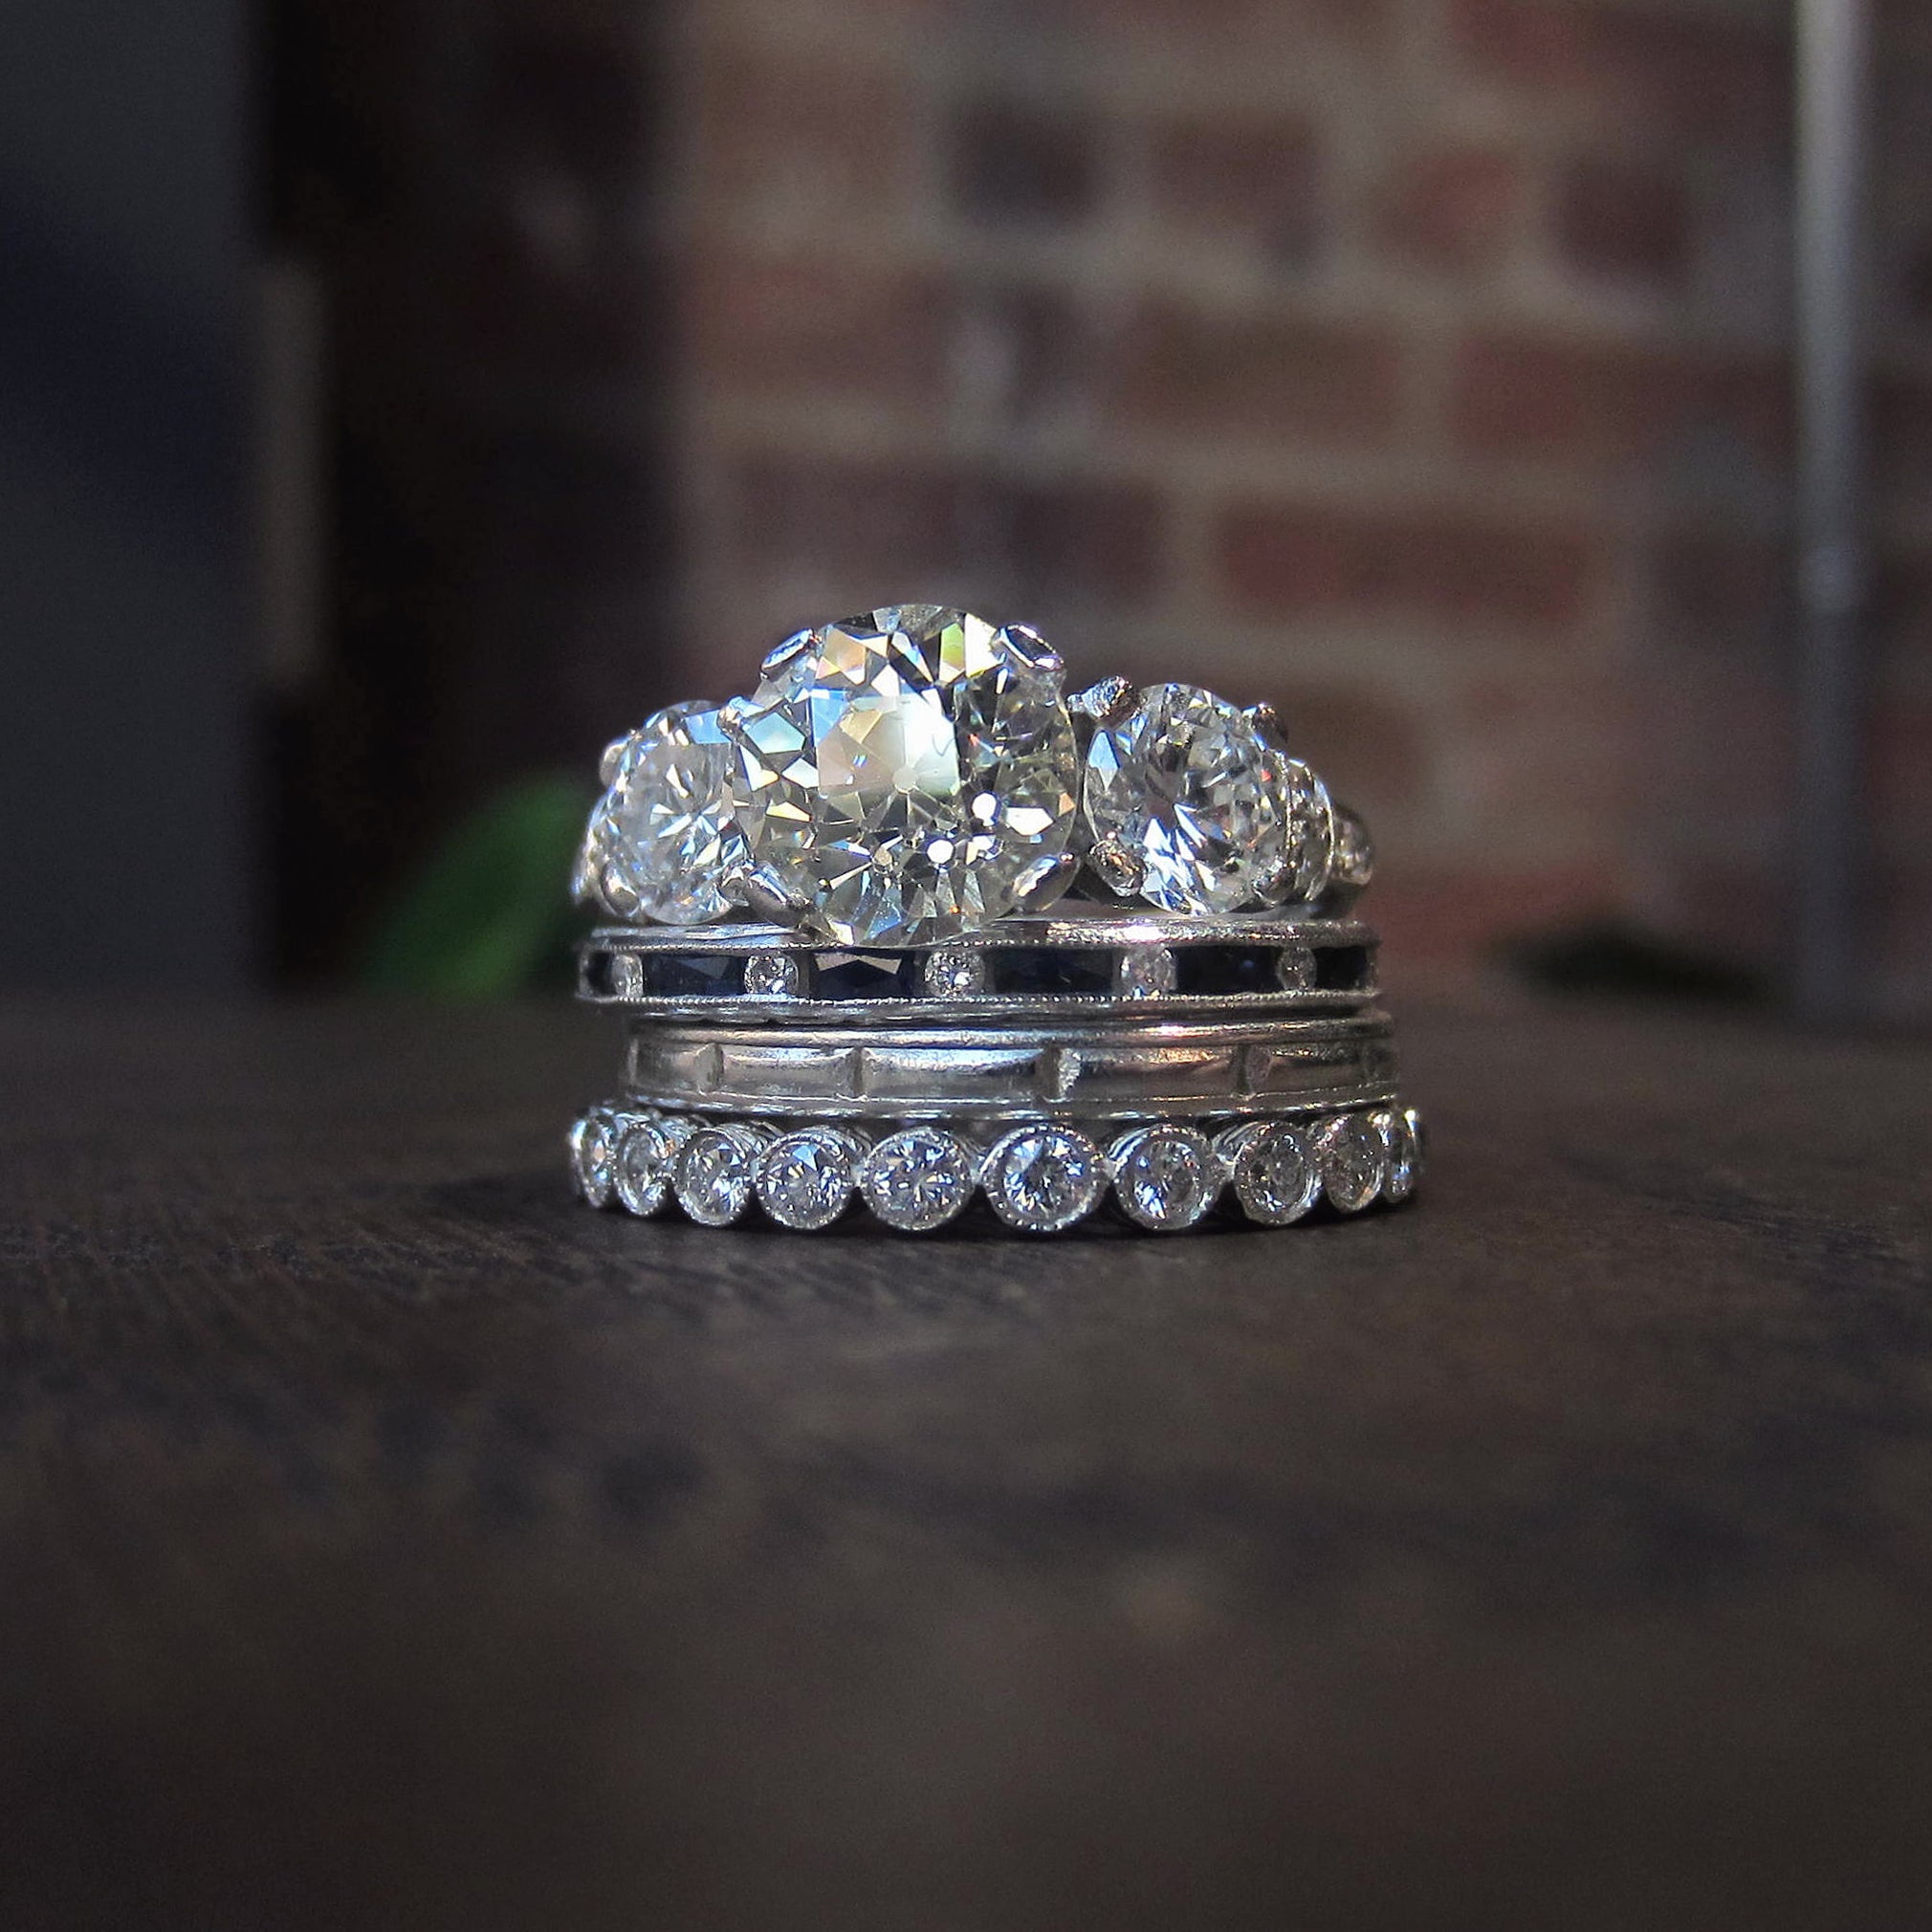 Vintage engagement ring and eternity band wedding bands from Doyle & Doyle